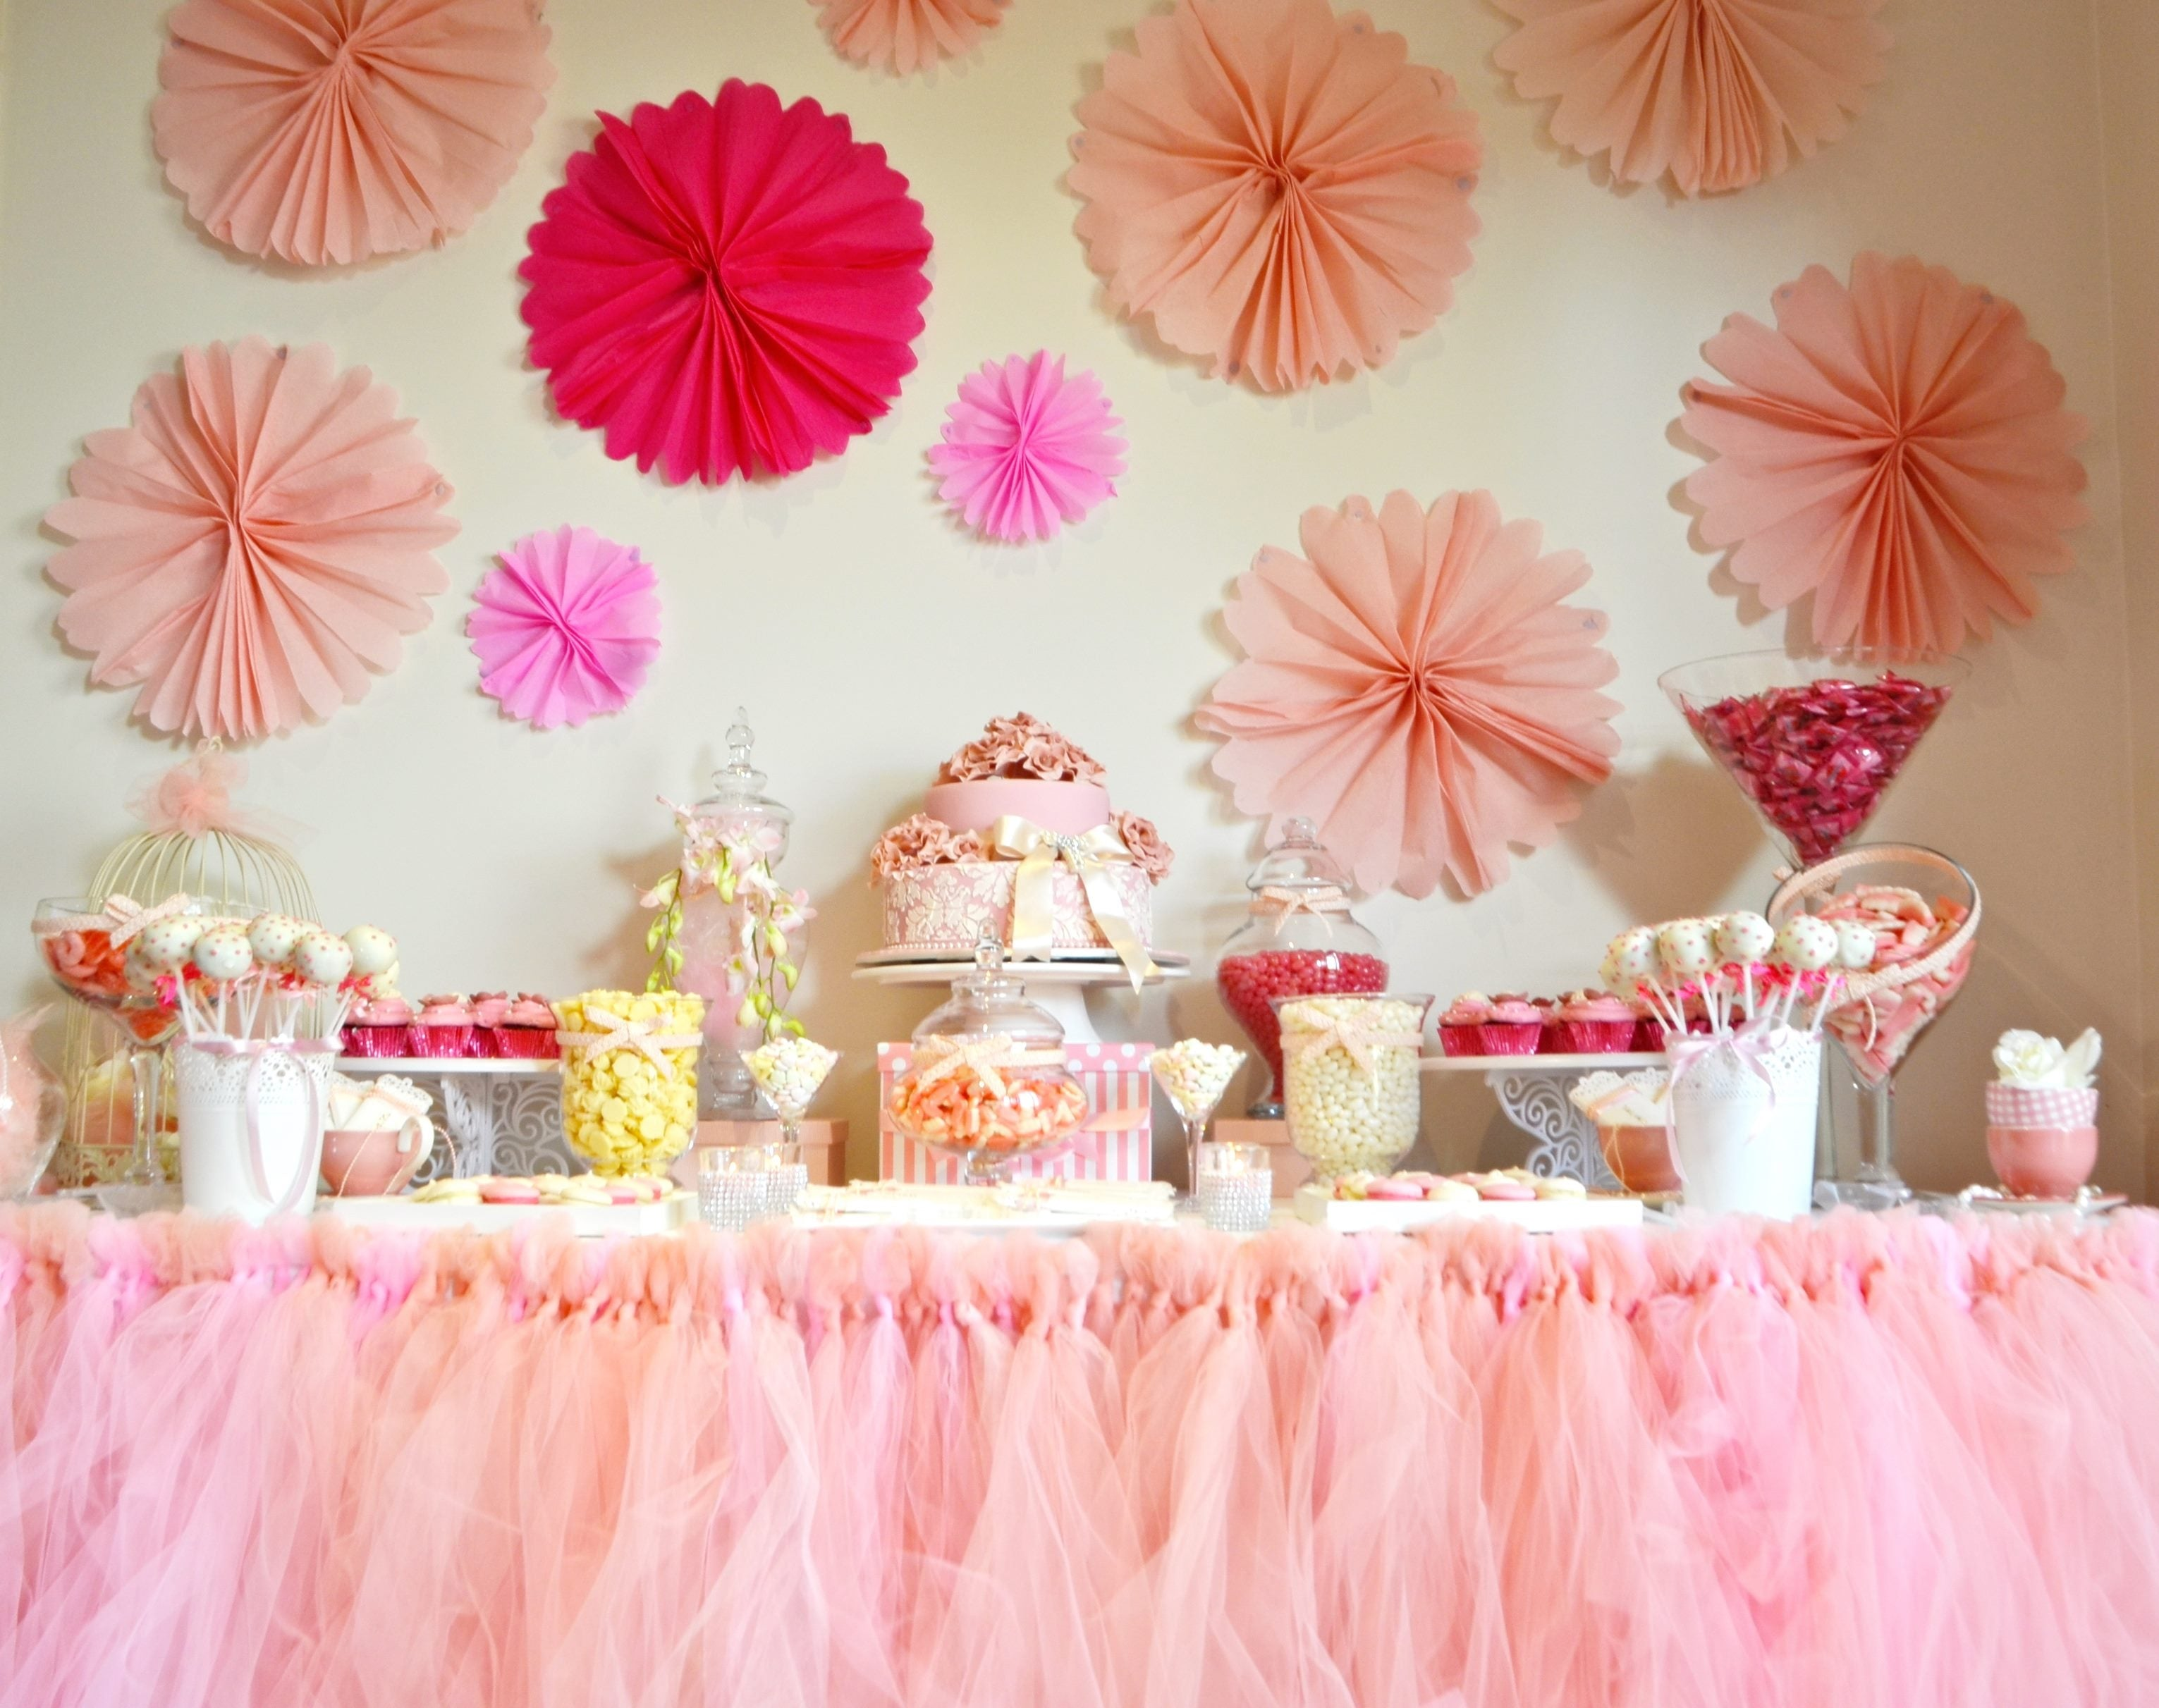 main-pink-and-white-christening-dessert-table-party